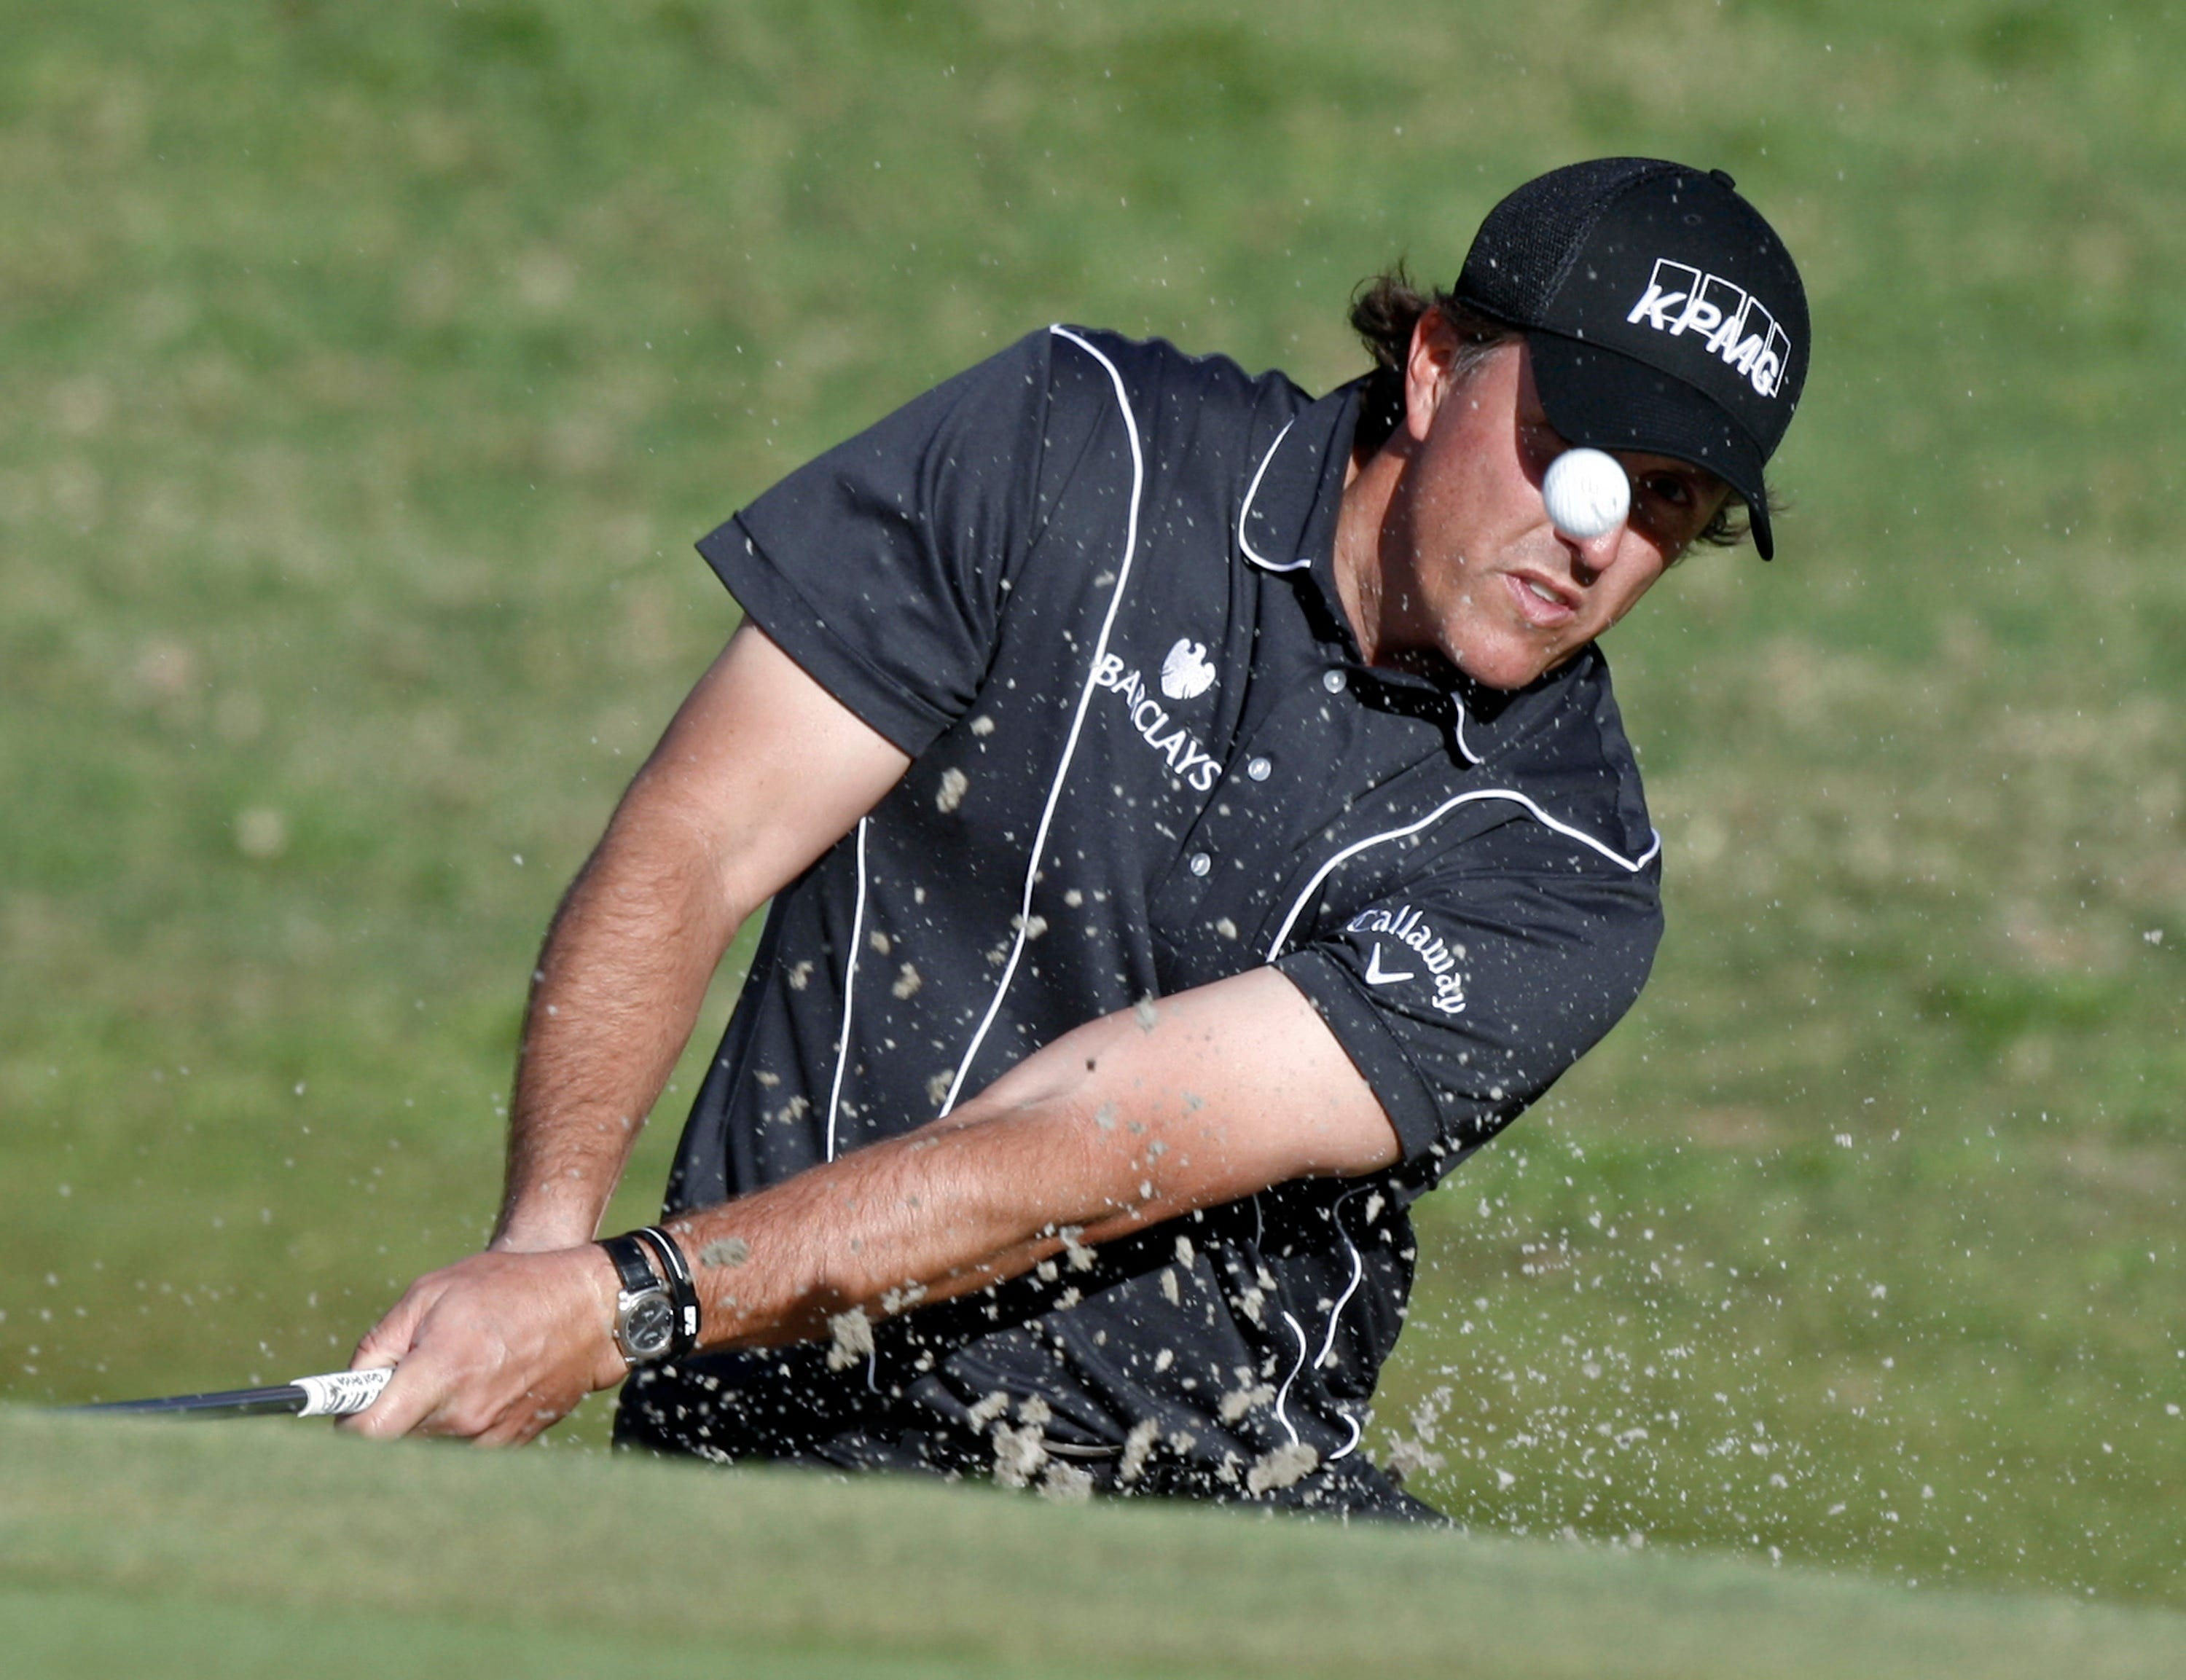 https://www usatoday com/picture-gallery/sports/golf/2014/05/31/phil